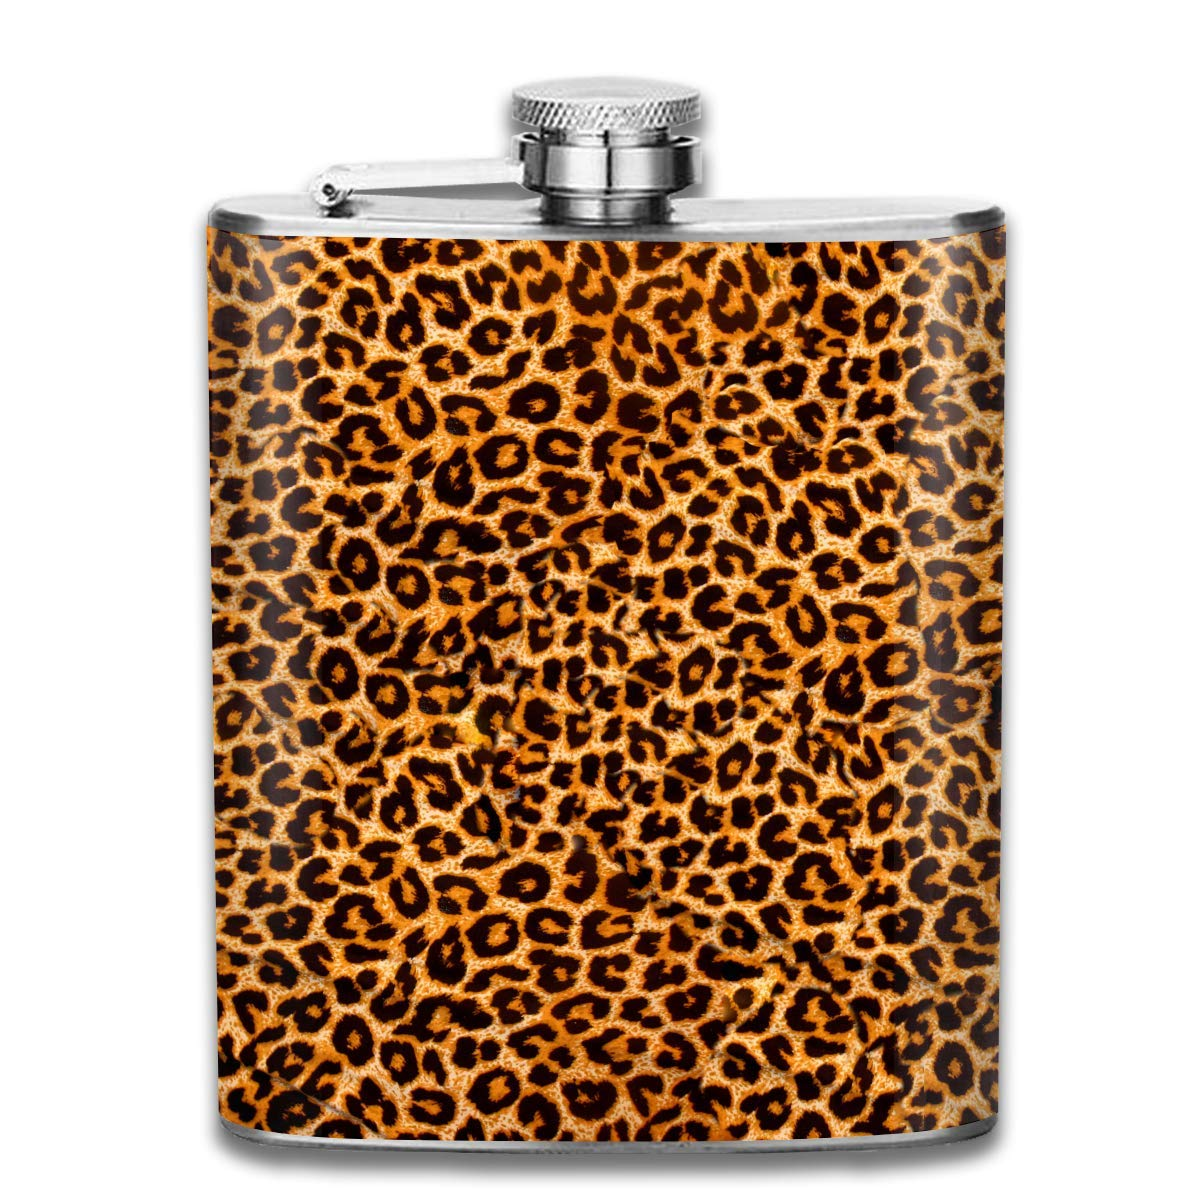 Pot Hip Flask Leopard Grain Steel Flask Rum Container Flask Pocket for Adults